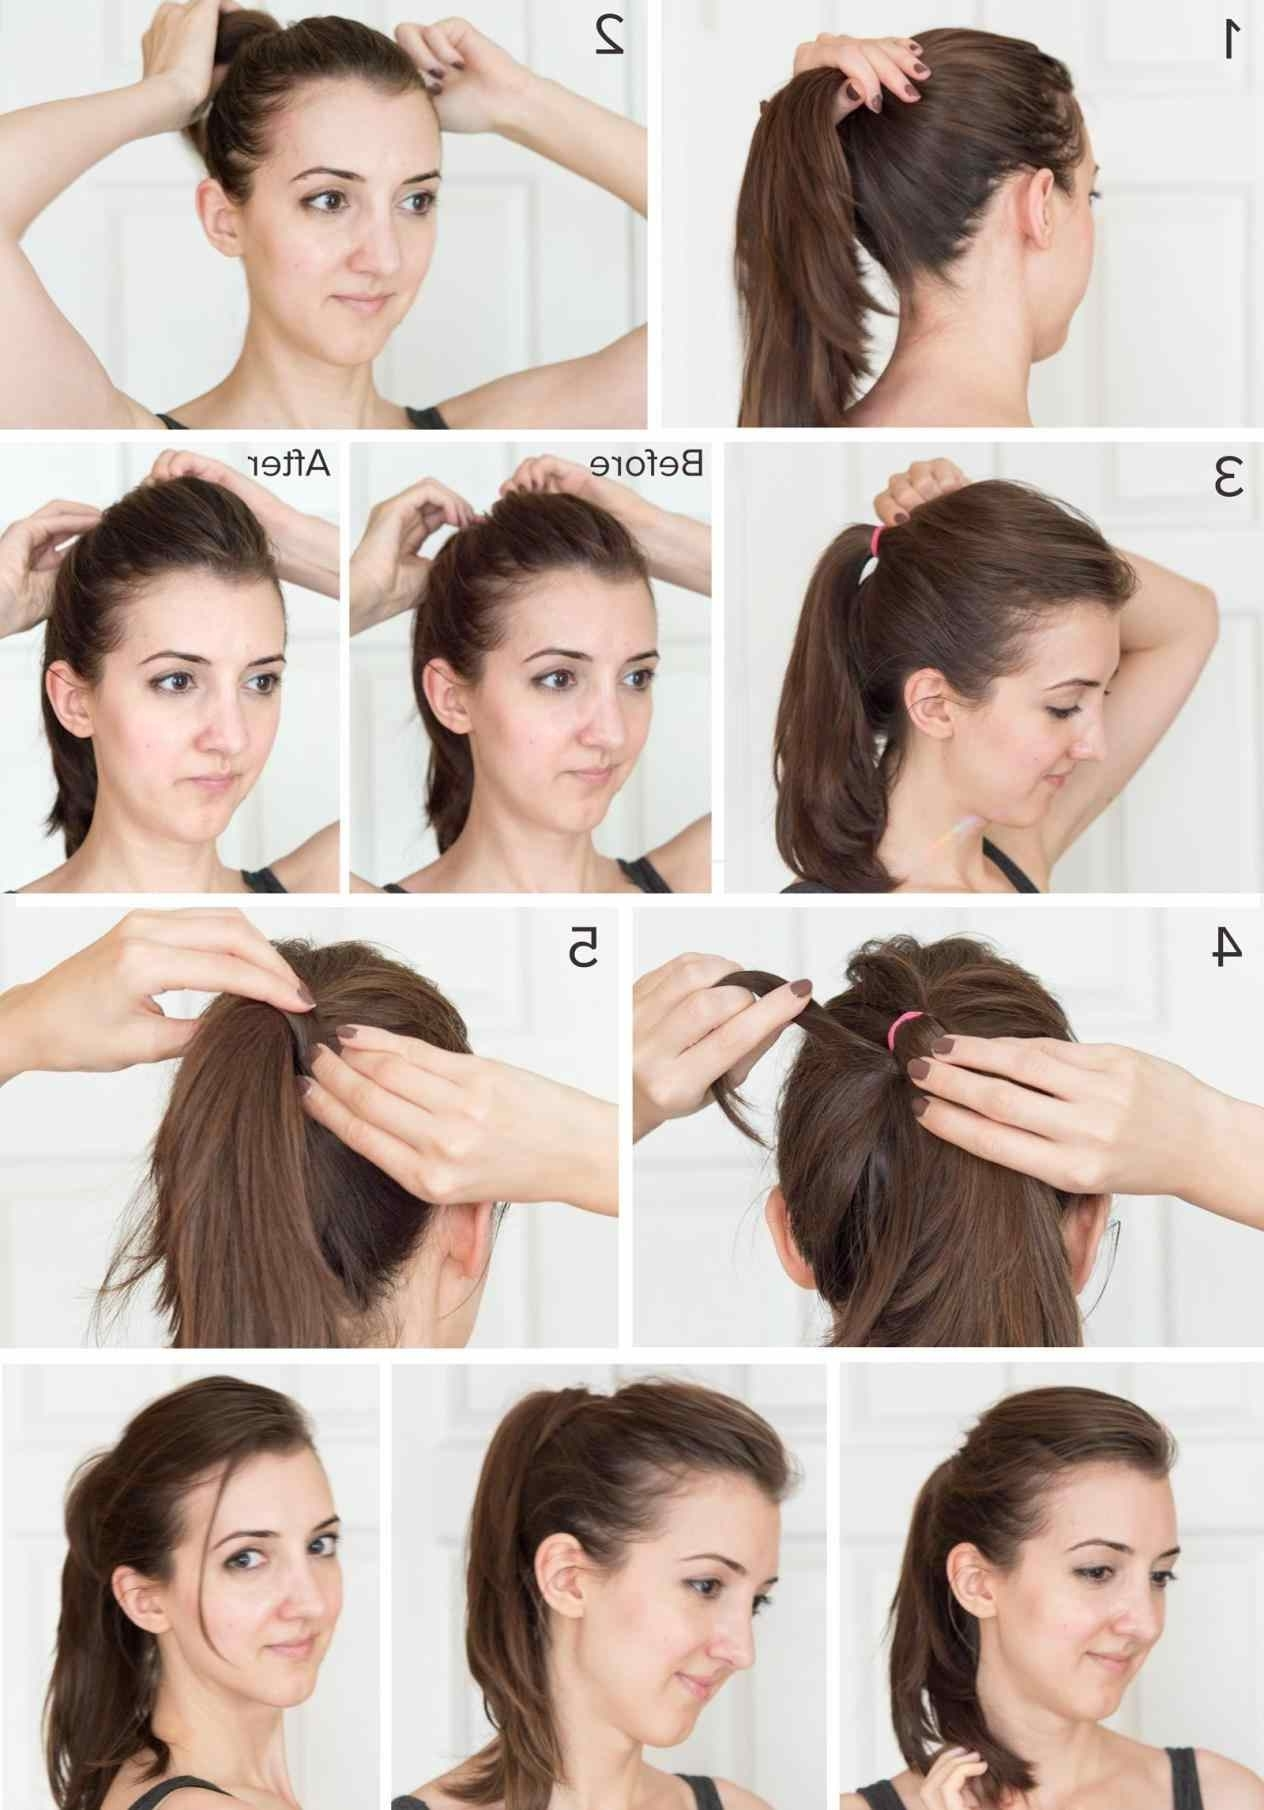 2018 Ponytail Hairstyles With Bump Intended For Ideas High Ponytail Hairstyles Tutorial About Ponytail With A Bump (View 3 of 20)